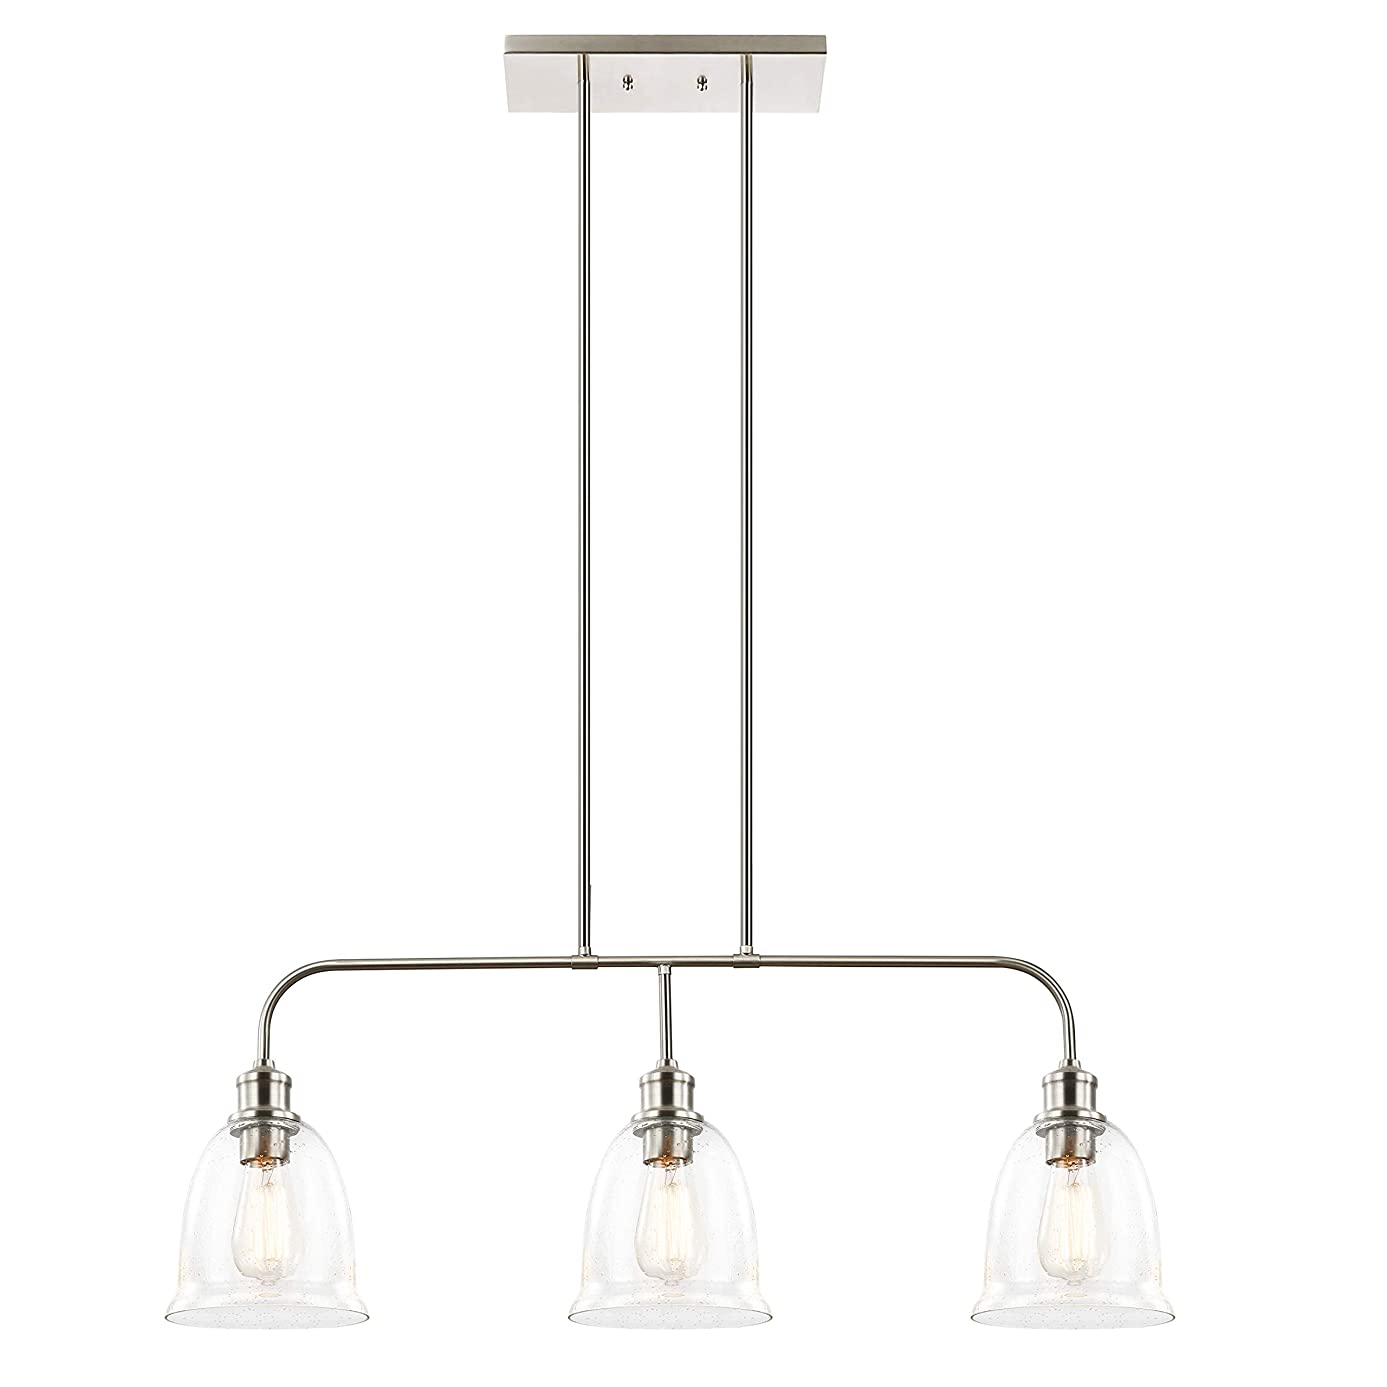 Light Society 3-Light Austin Pendant Lamp, Satin Nickel Finish with Handblown Clear Seeded Glass Shades, Adjustable Modern Lighting Fixture for Kitchen Island, Dining Room and Restaurants (LS-C243-SN)